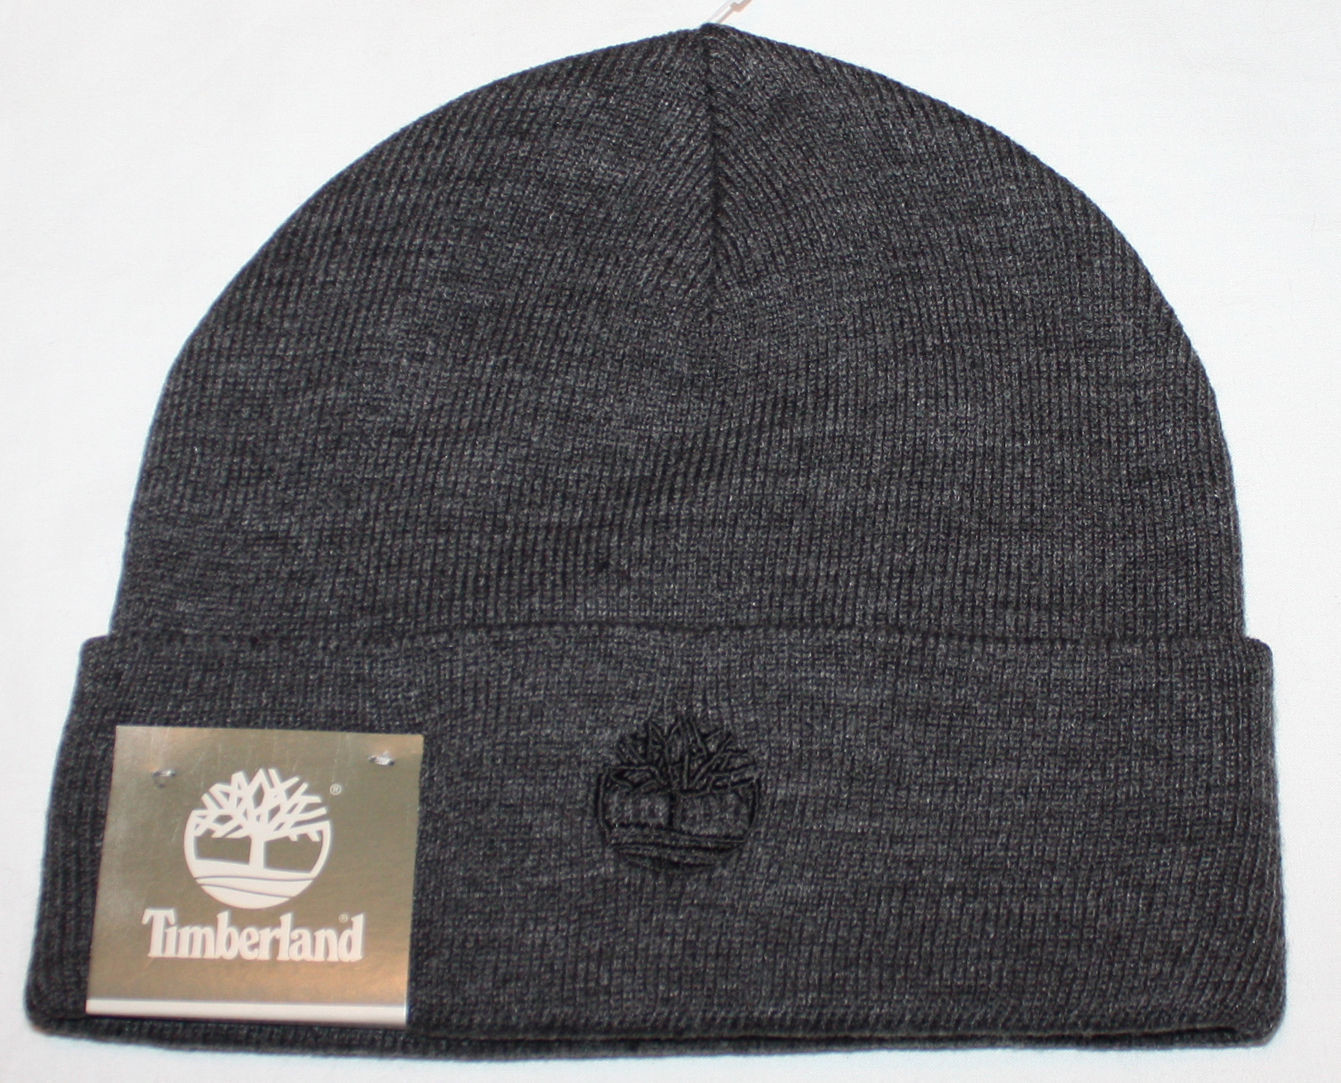 Timberland Men's Charcoal Gray Cuffed Beanie Hat (One Size)